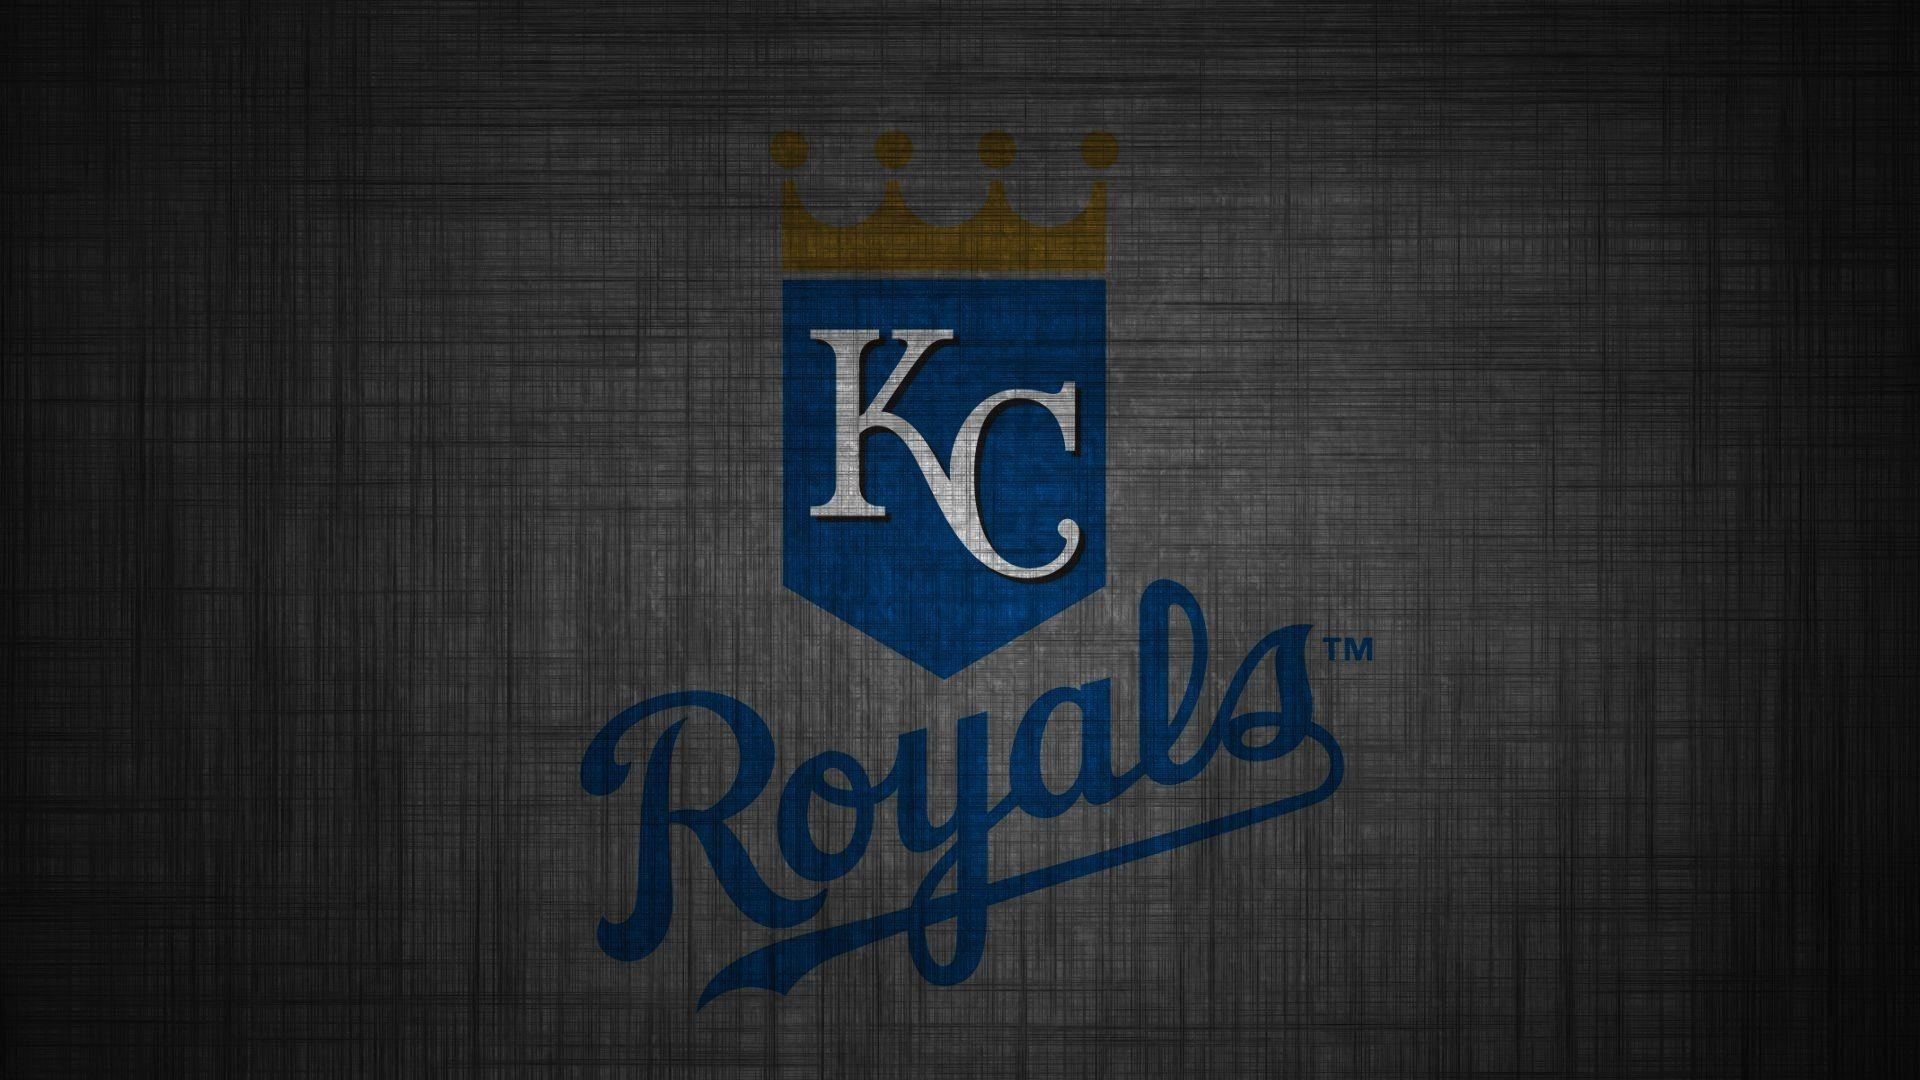 kansas city royals wallpapers - wallpaper cave